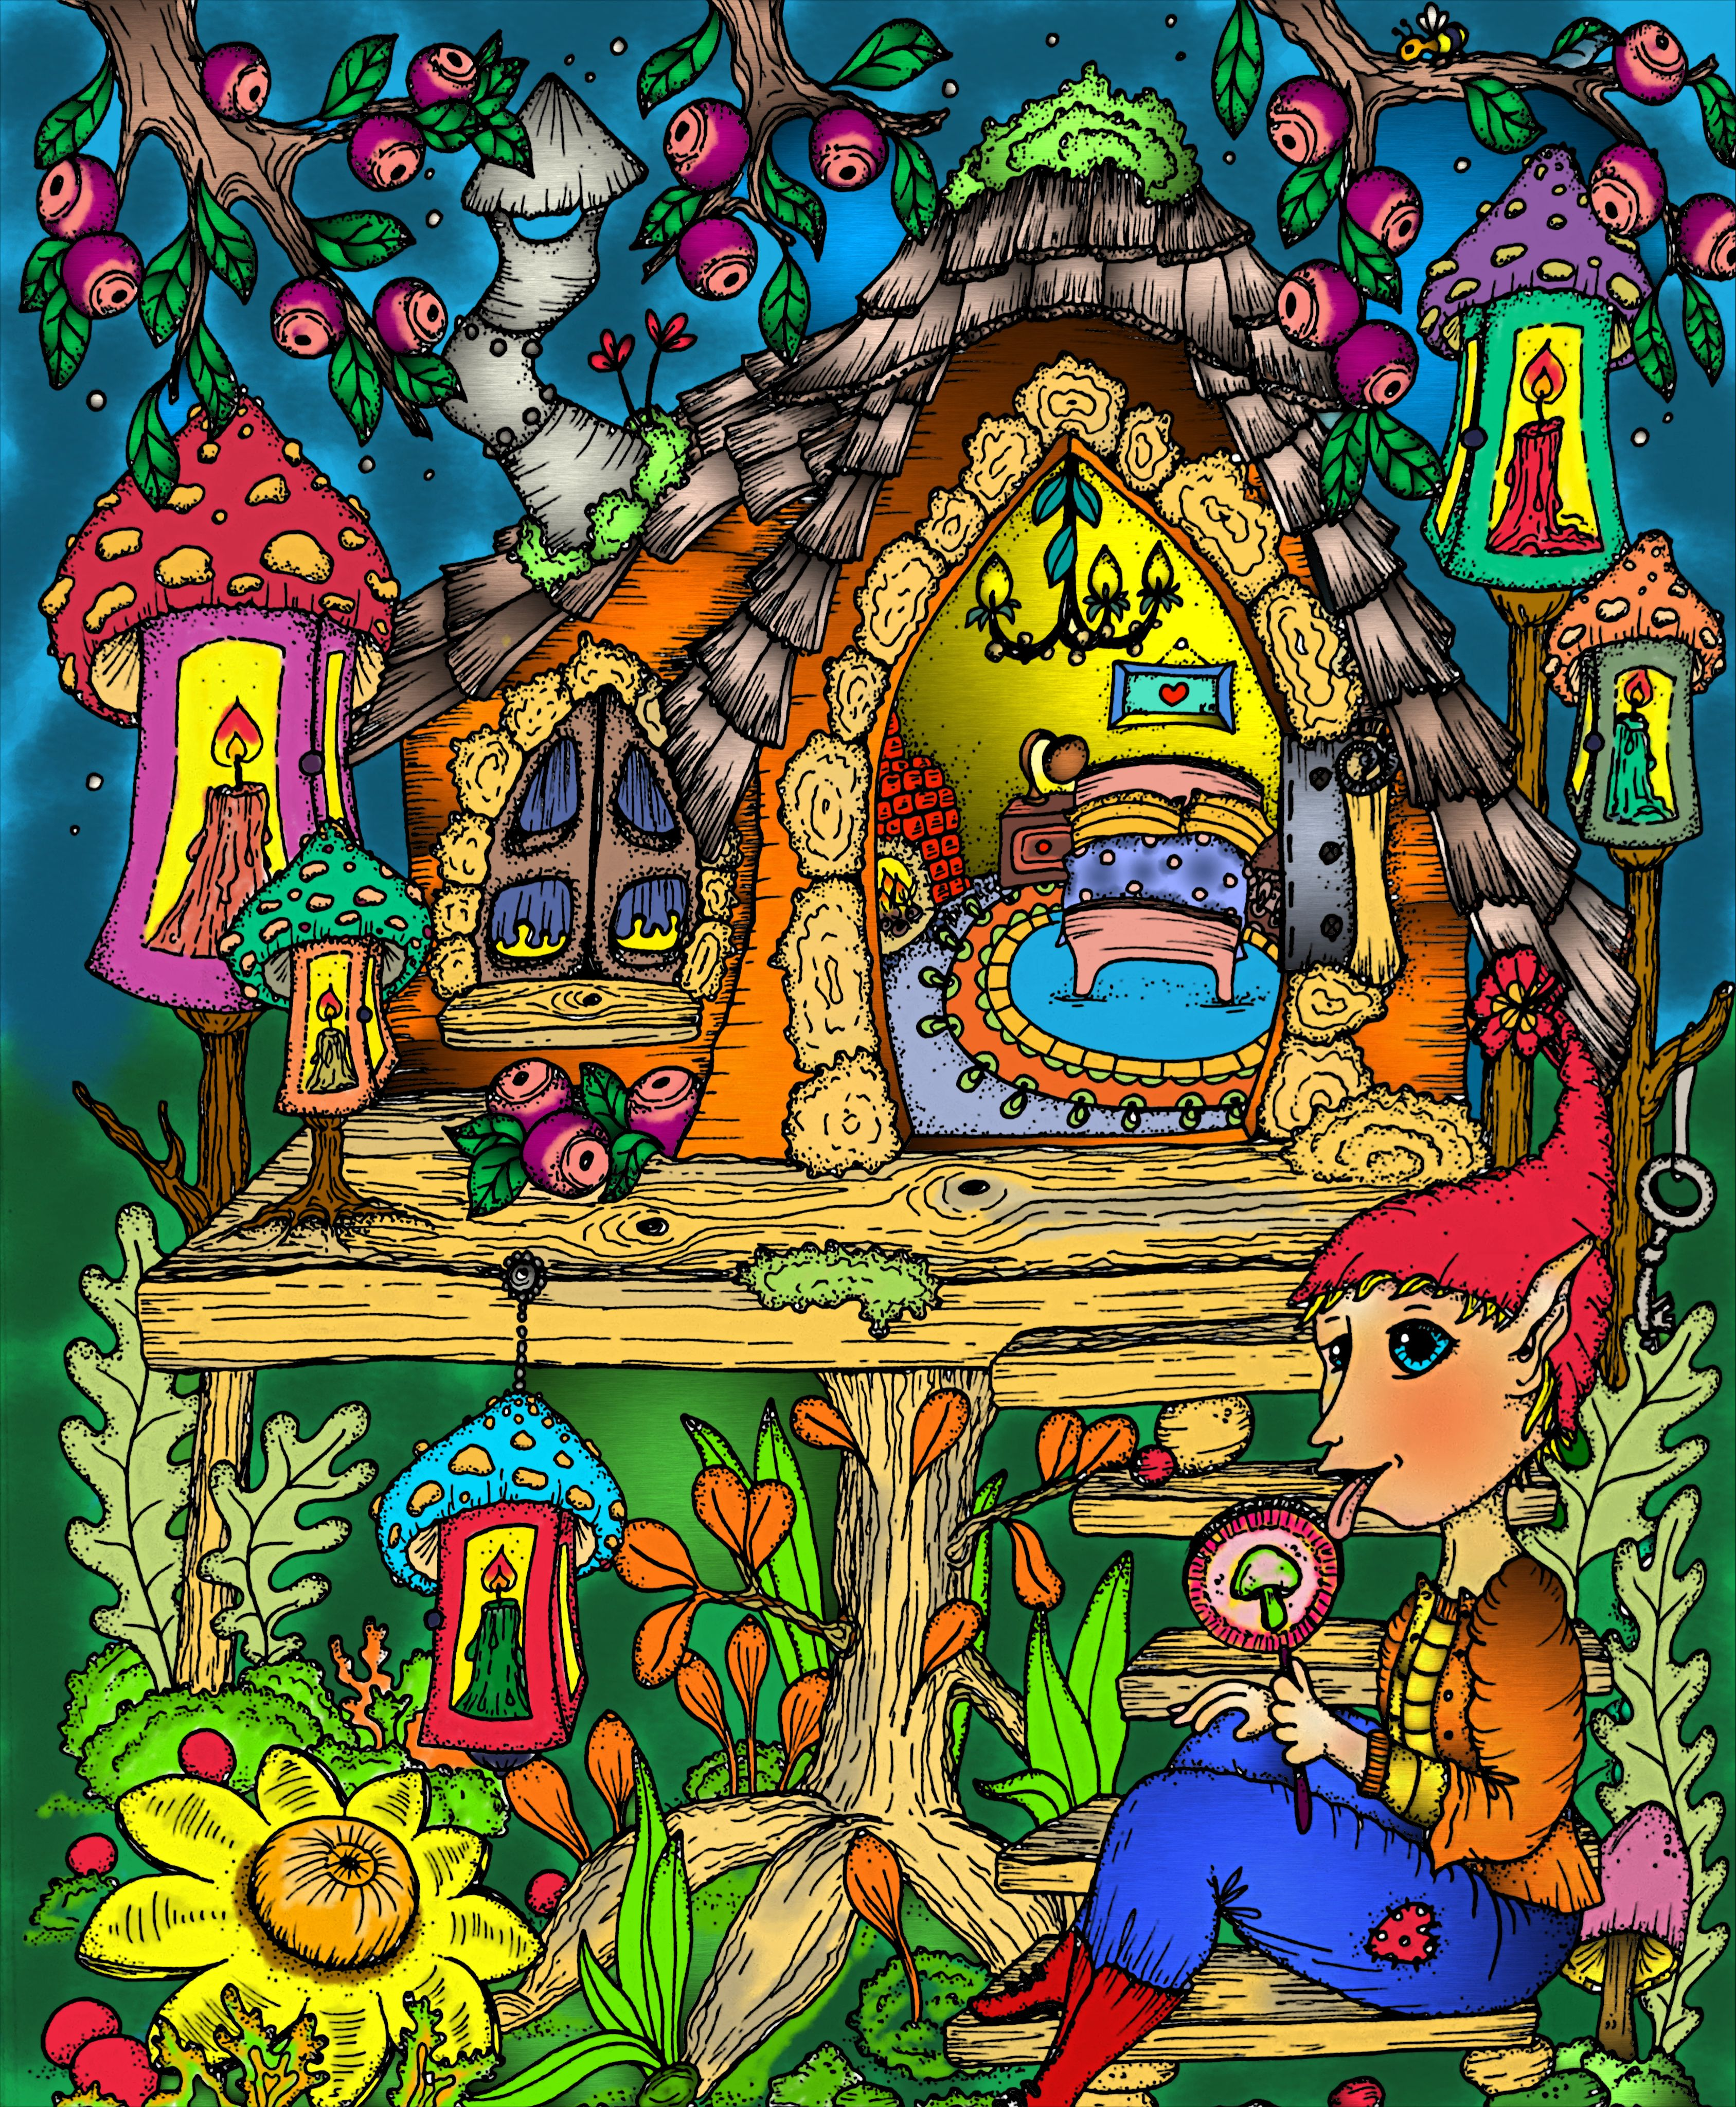 Book Fairy Miracles By Klara Markova Digitally Colored Using Pigment App On Ipad Pro Coloring Book Pages Coloring Books Fairy